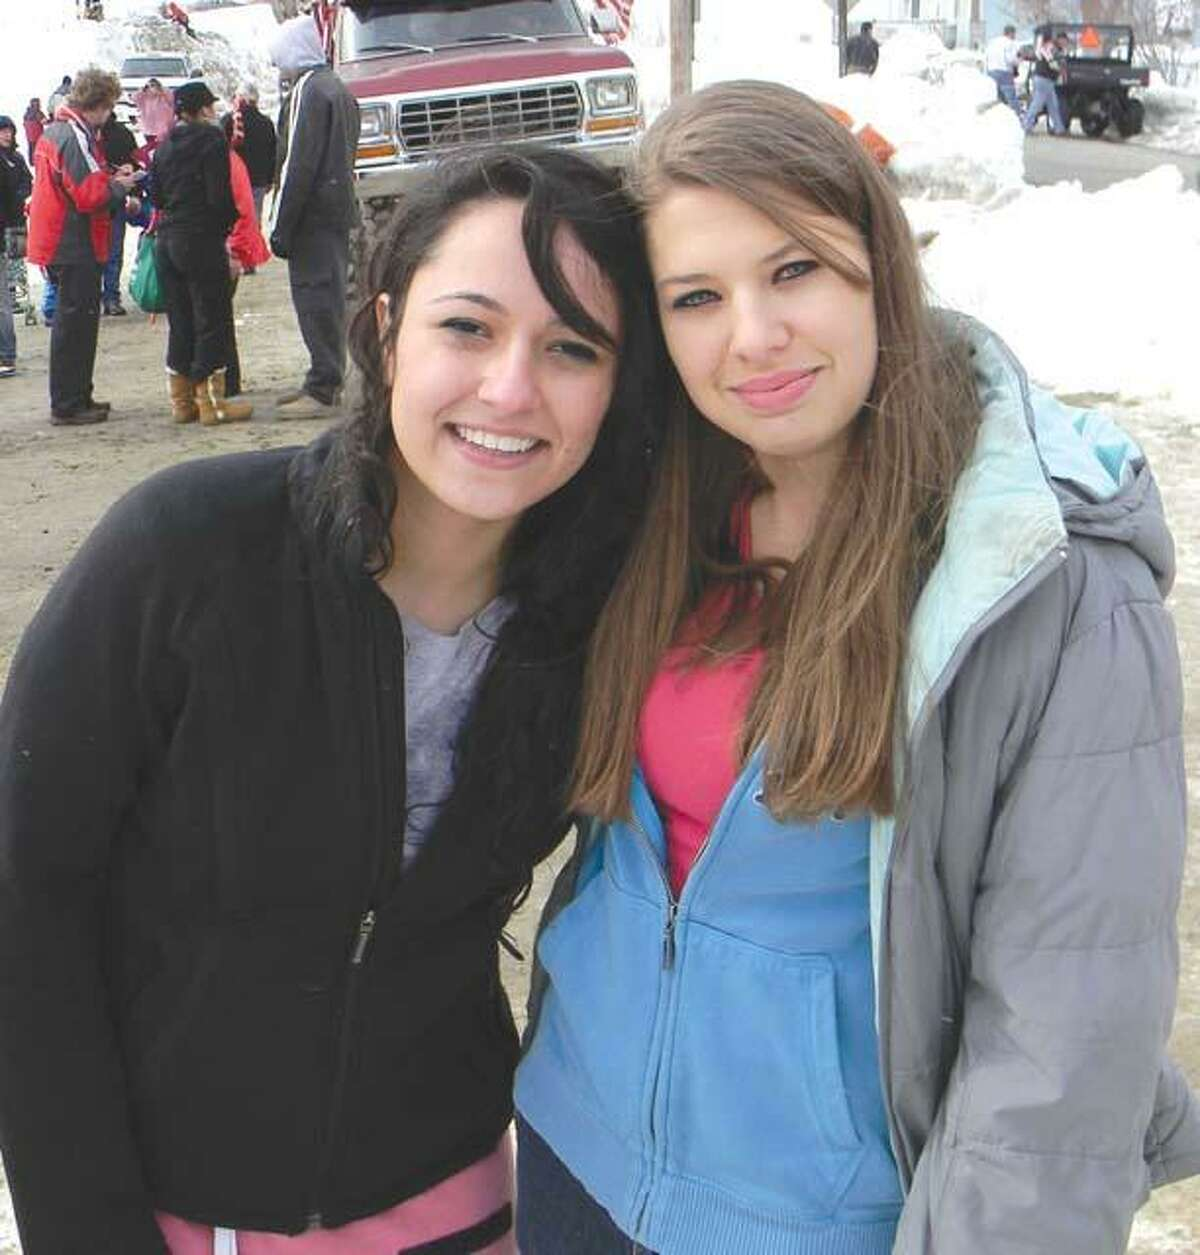 MIKE AGOGLIATI/ Register CitizenLitchfield High School senior Fidan Shamkhalova, left, participated in the Penguin Plunge for the fourth year in a row. Shamkhalova posed with a friend after the plunge.